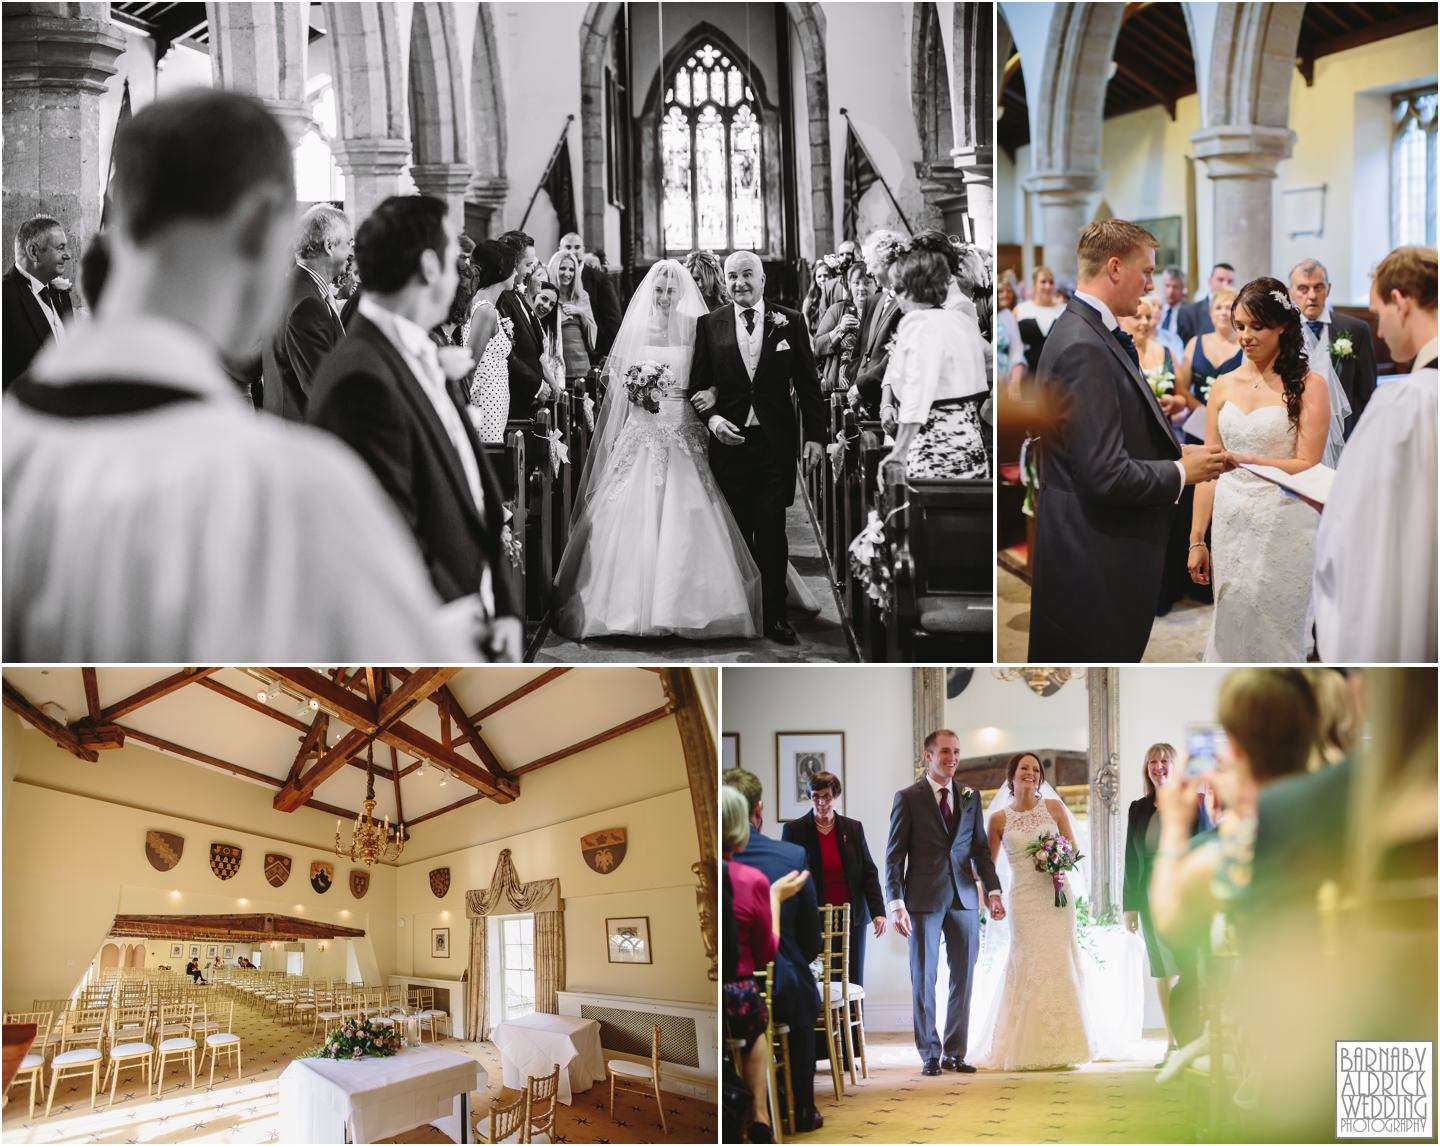 All Saint's Church Ripley Castle wedding ceremony